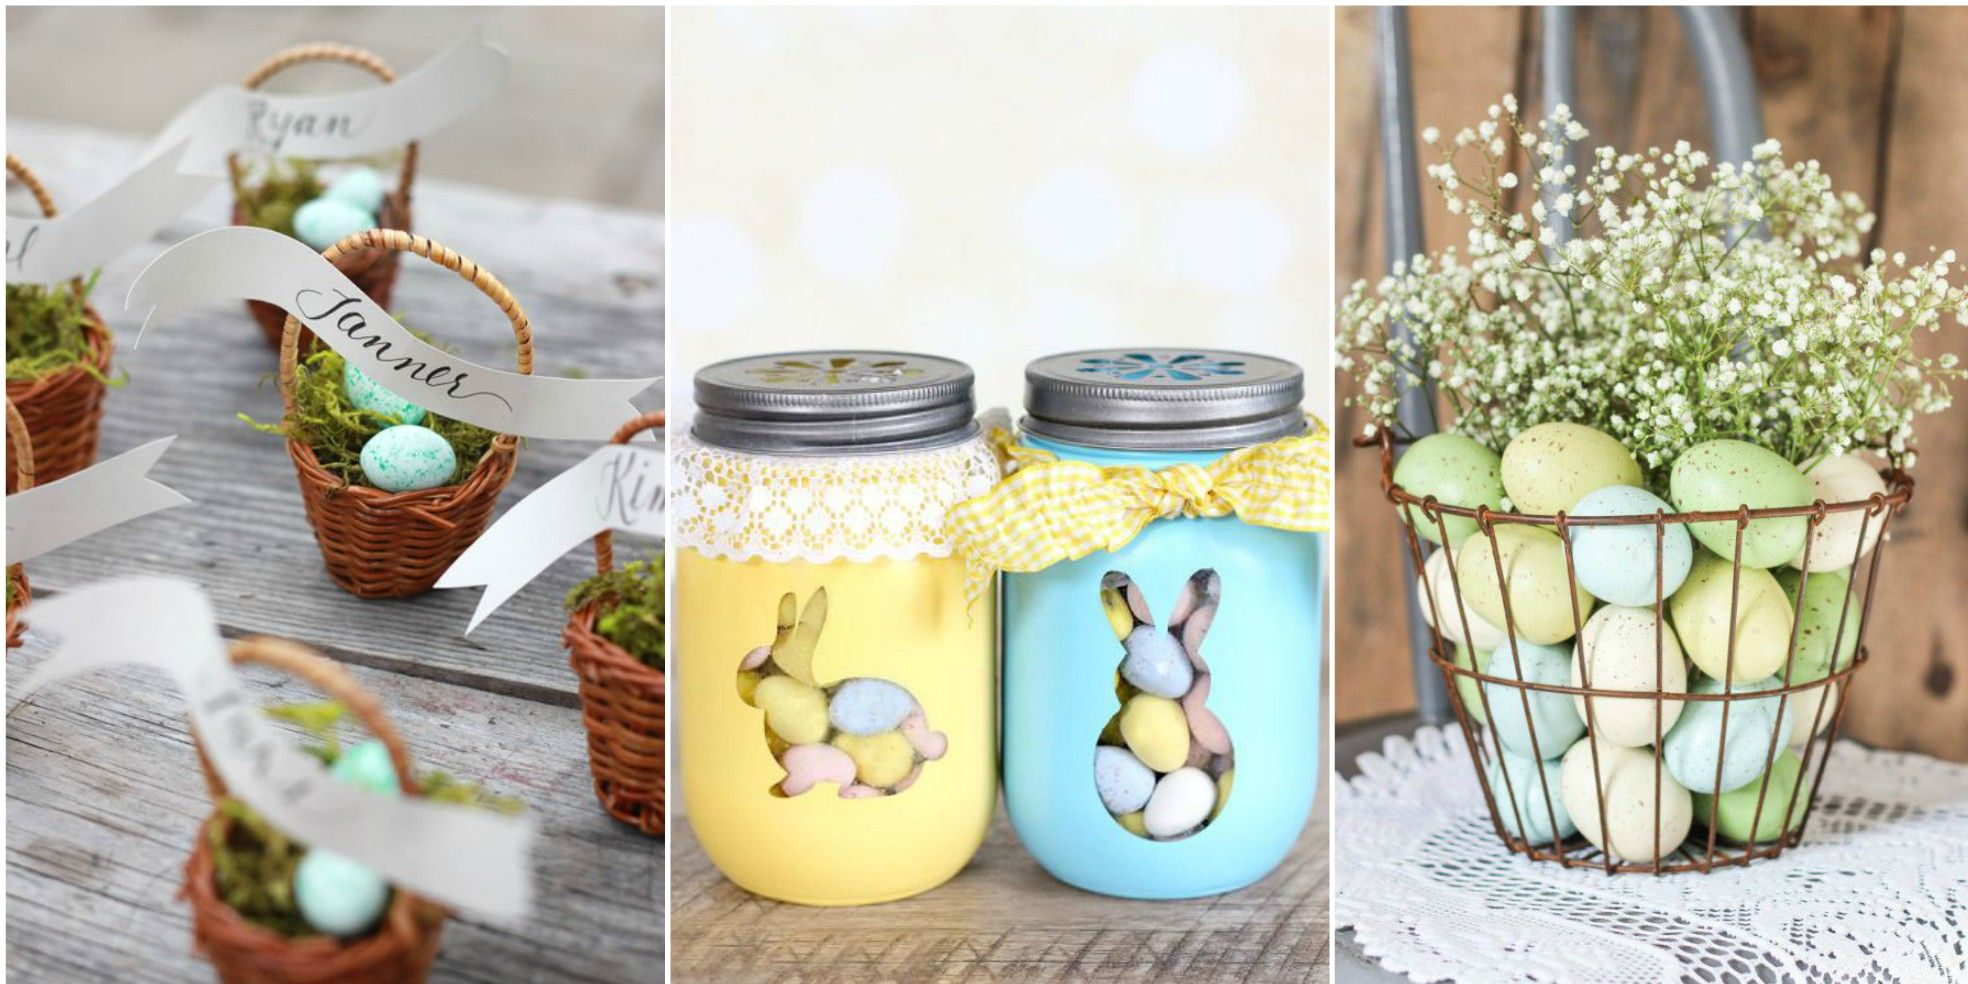 25 Best Easter Party Ideas Decorations Food And Games